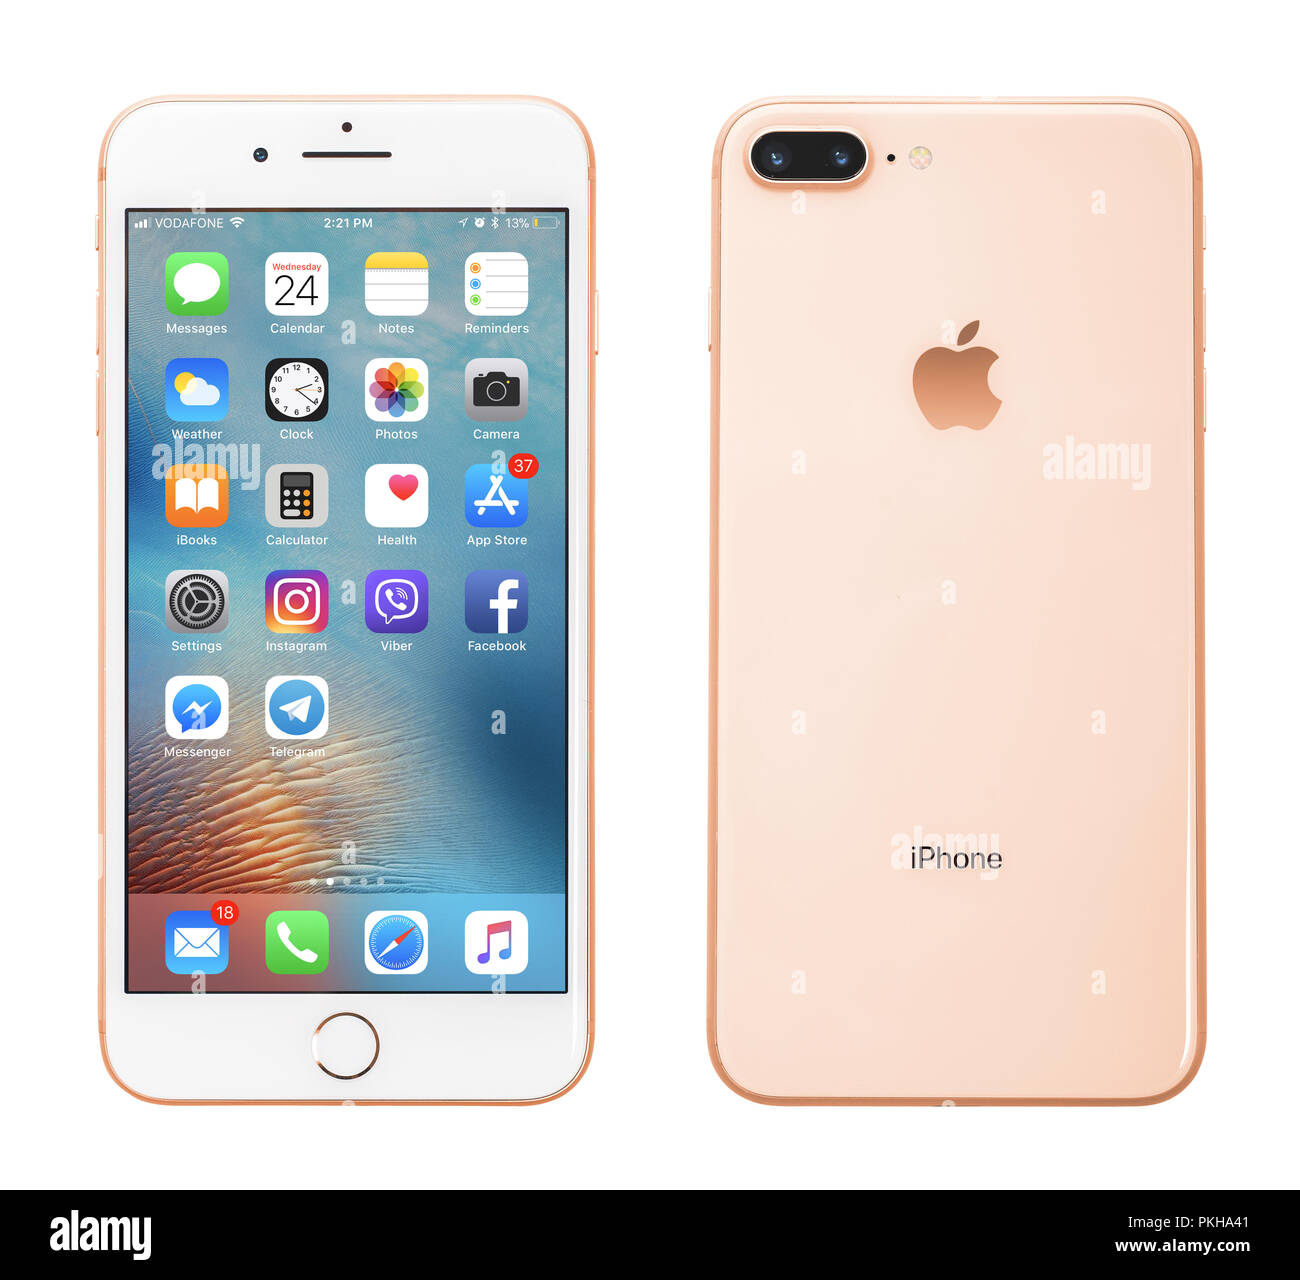 Iphone 8 Immagini Iphone 8 Fotos Stock Alamy